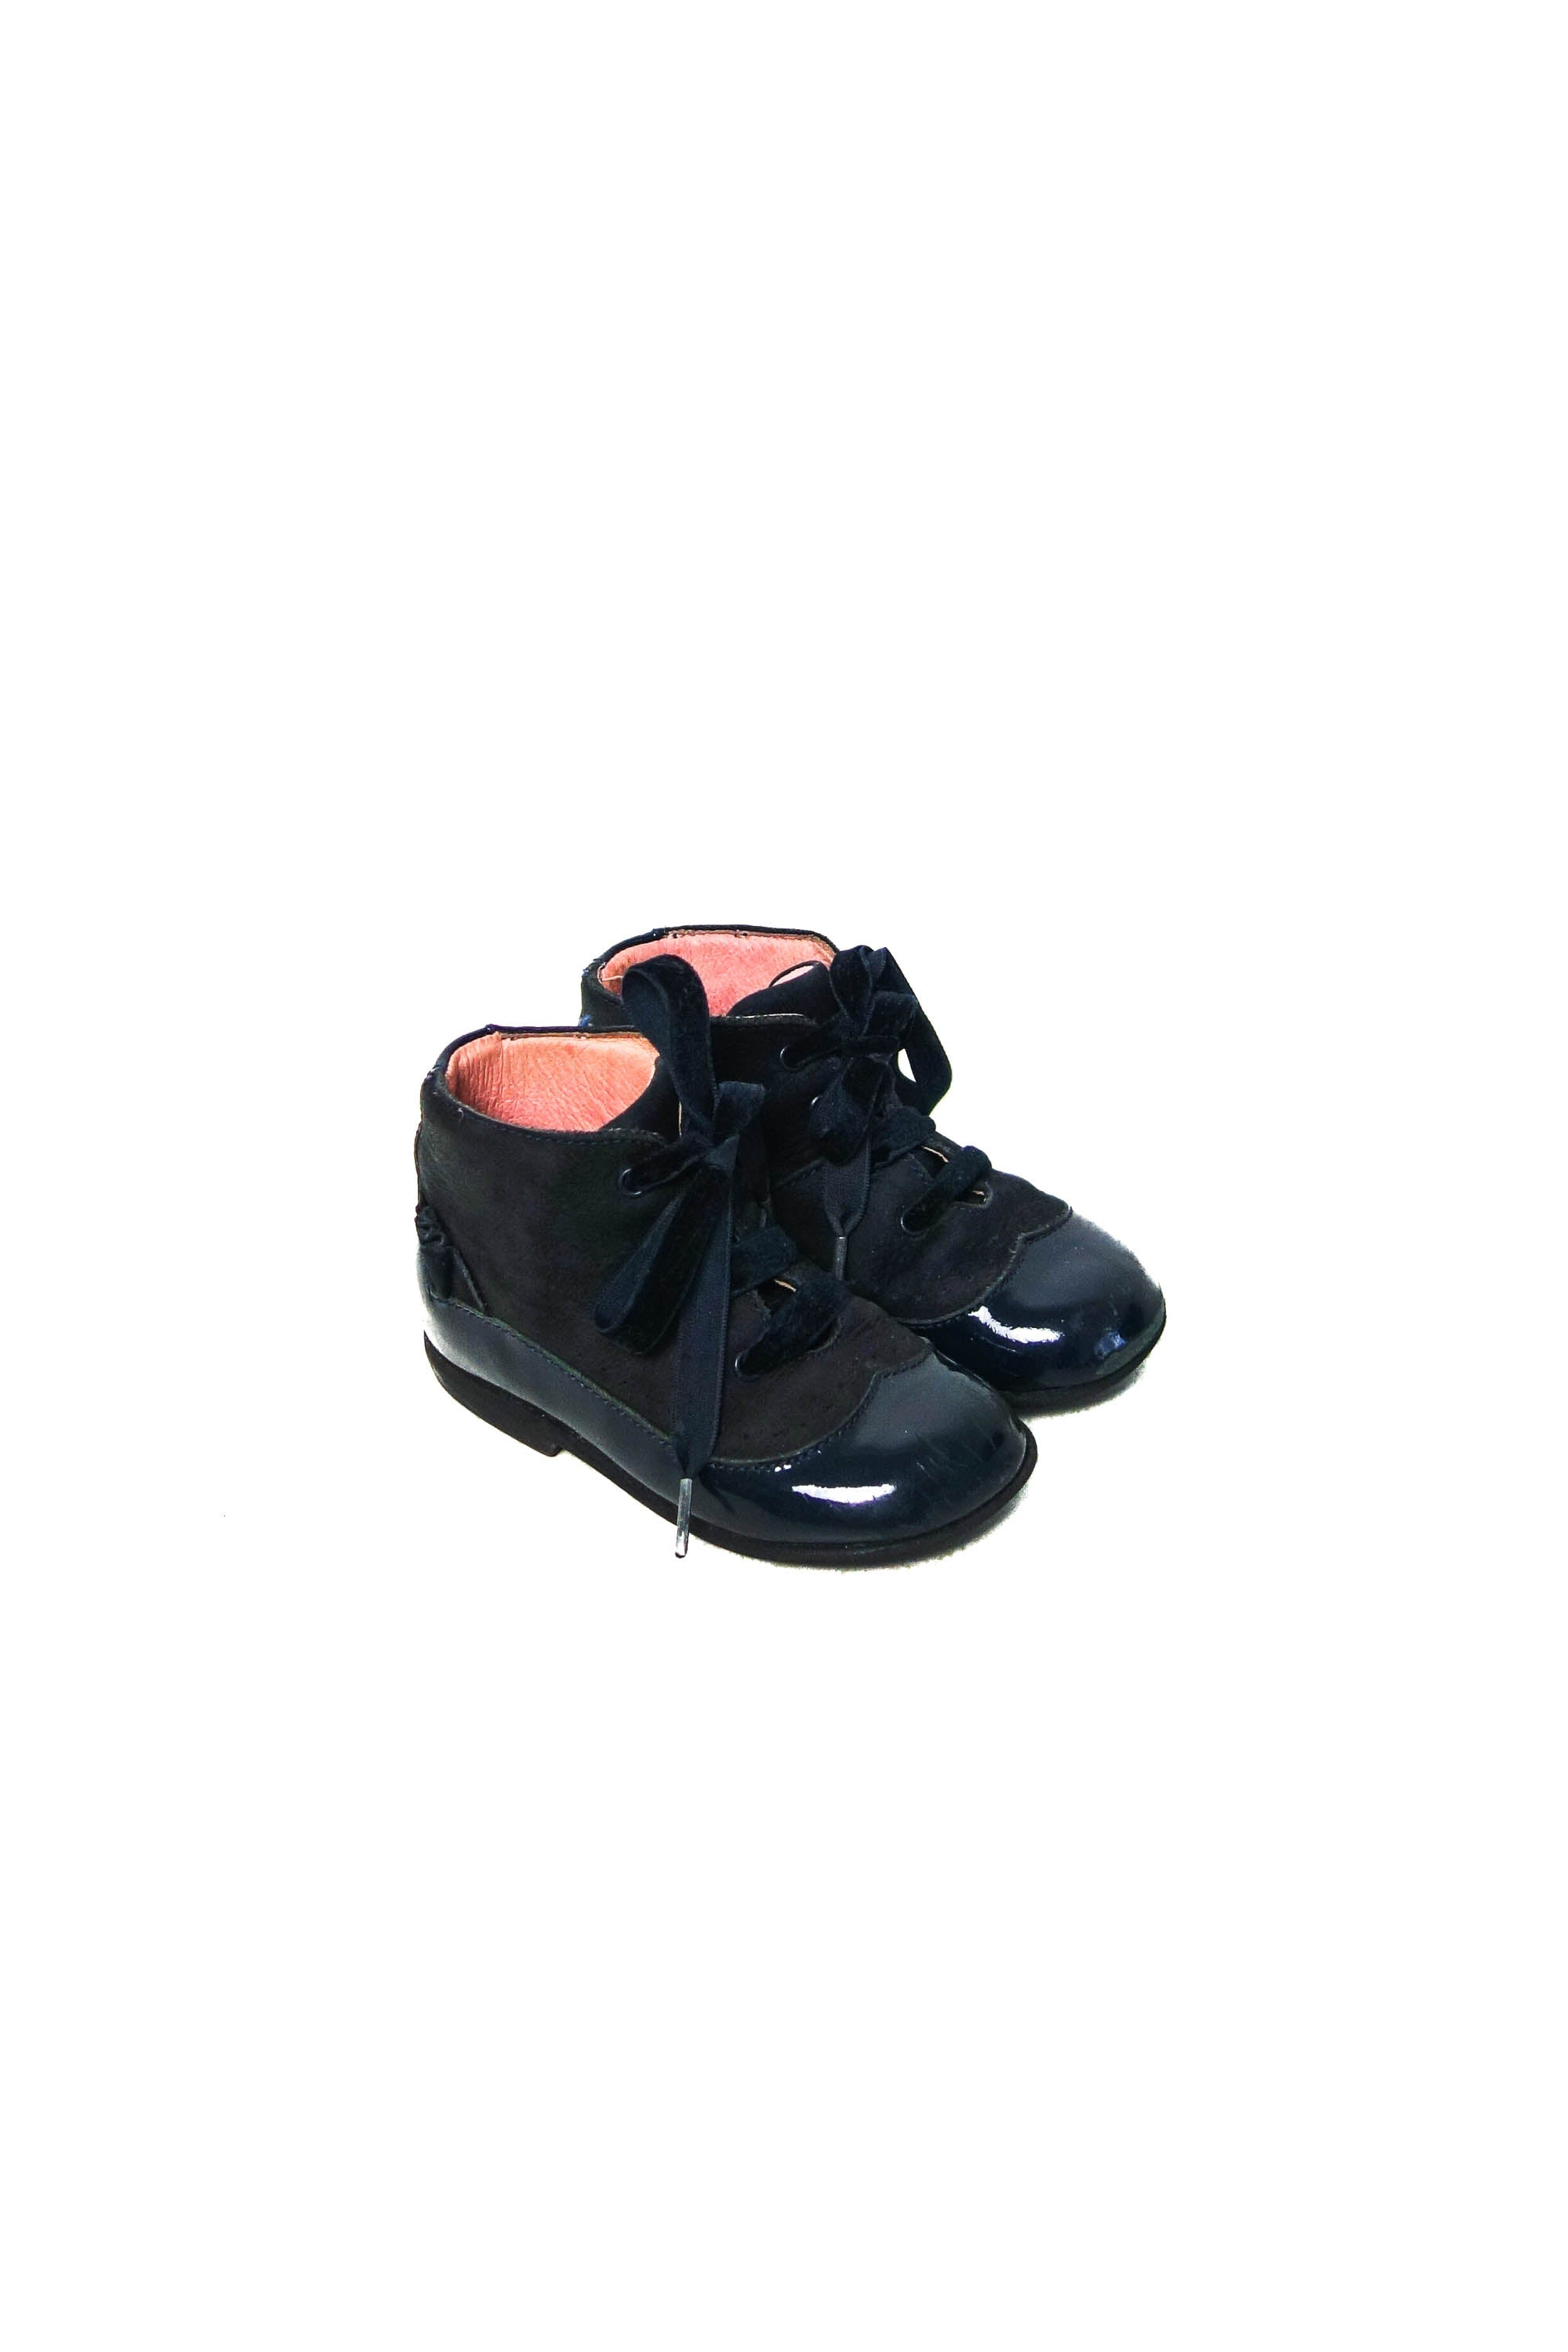 10003330 Jacadi Baby ~ Boots 18-24M (23 EU) at Retykle